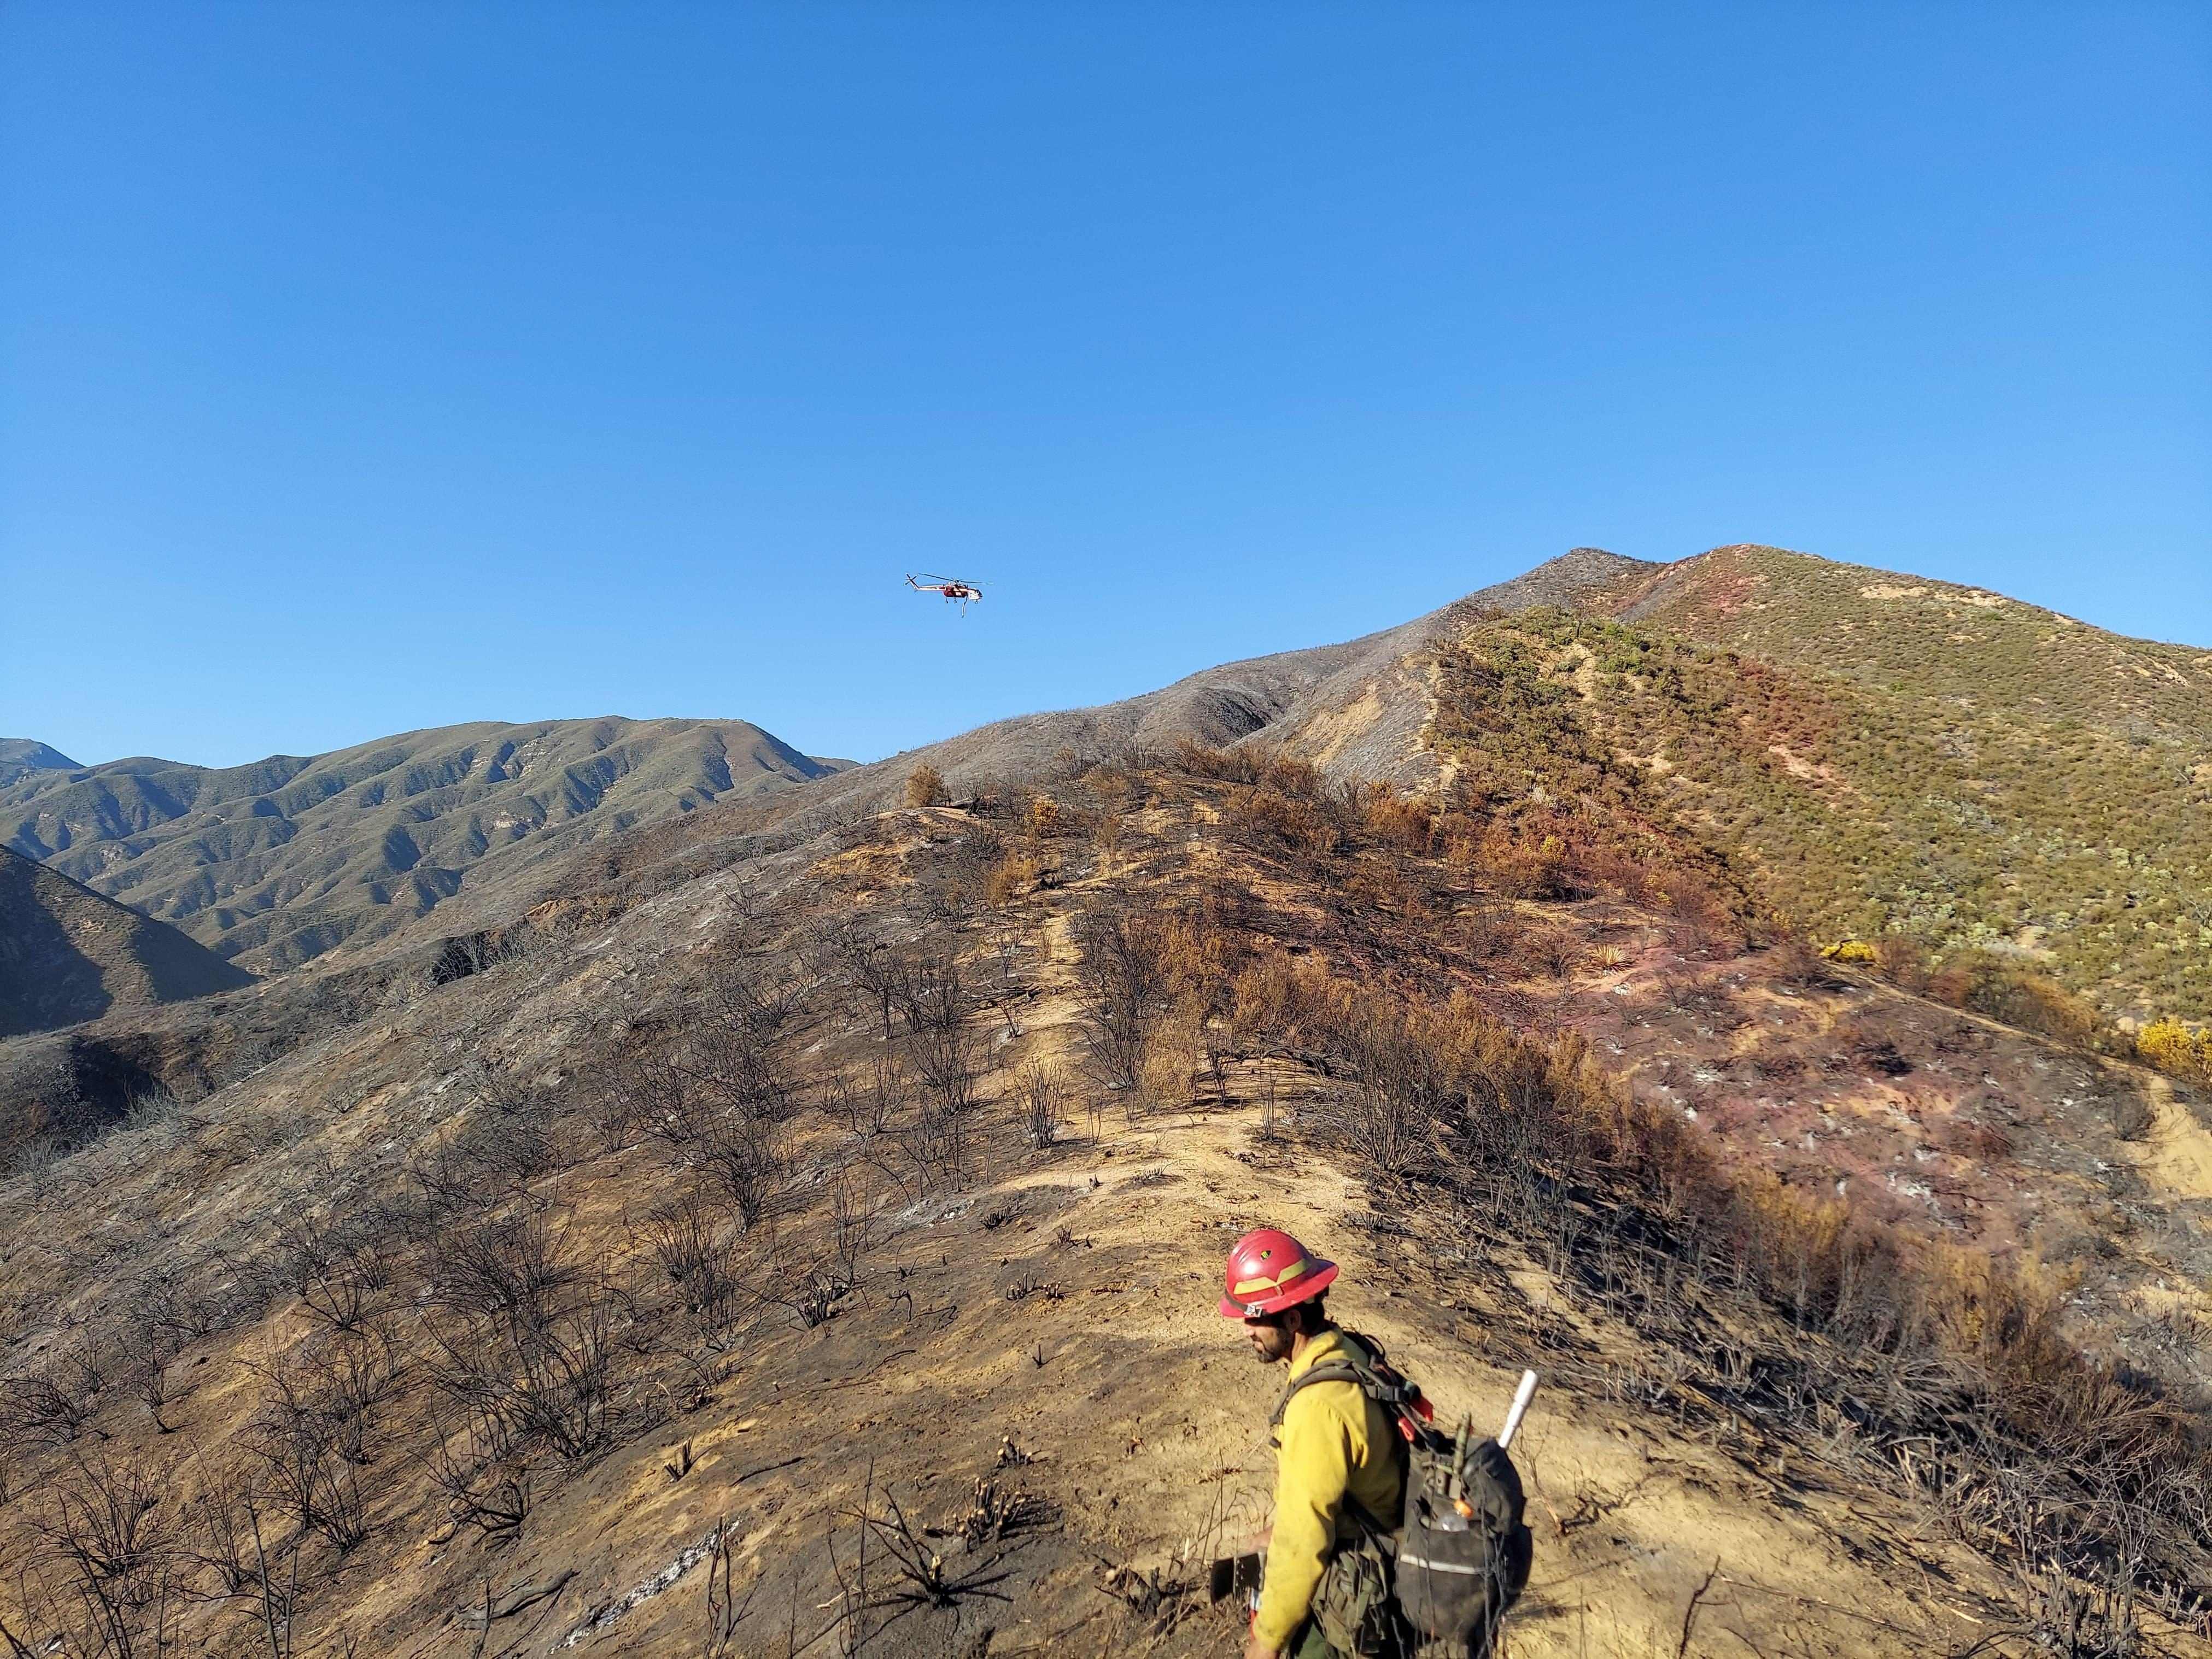 Firefighters hike the ridgeline to get to their work area for the day.